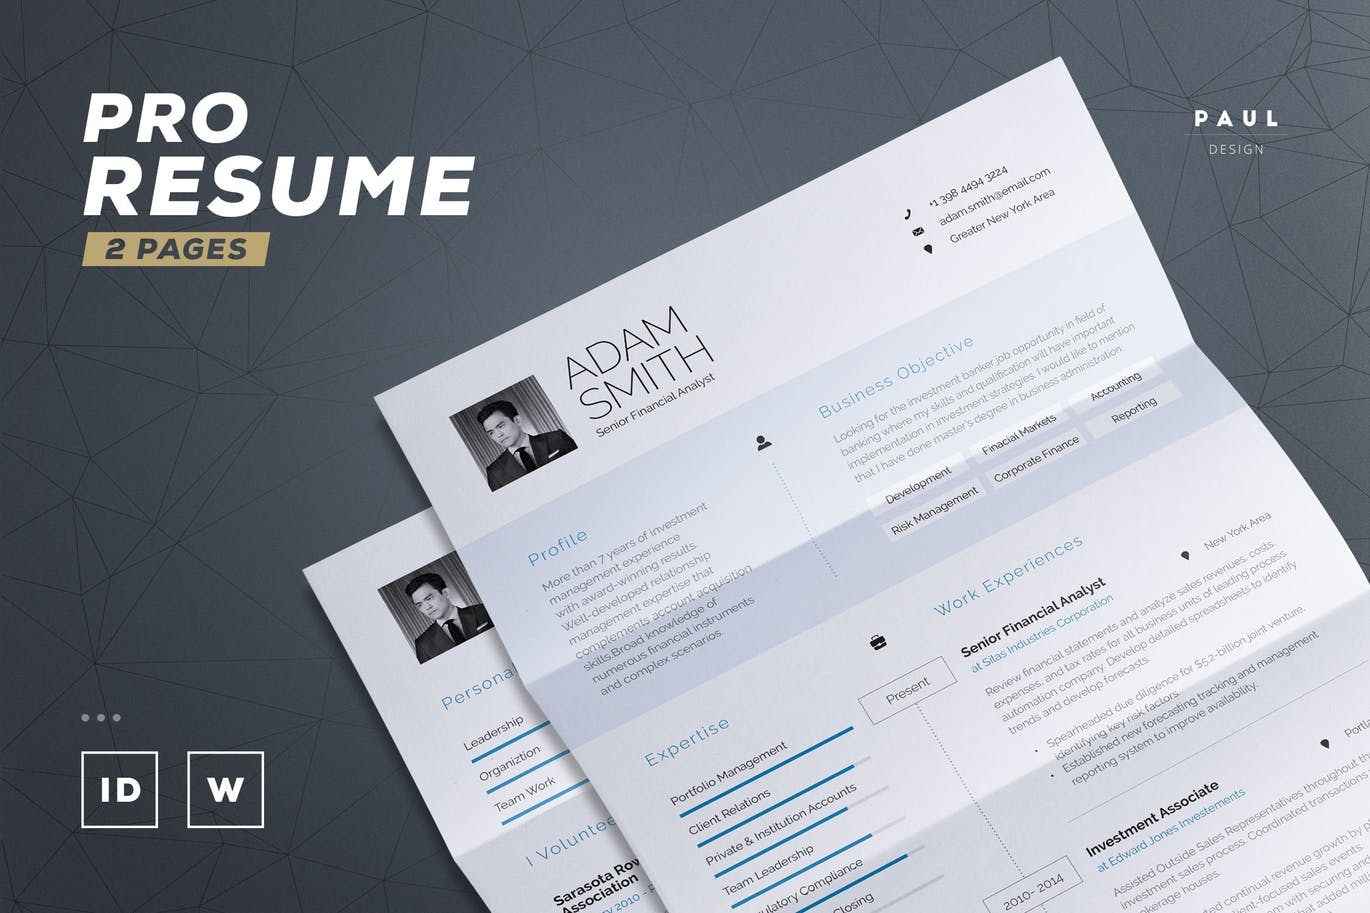 Resume Templates Indesign Endearing The Best Cv & Resume Templates 50 Examples  Design Shack